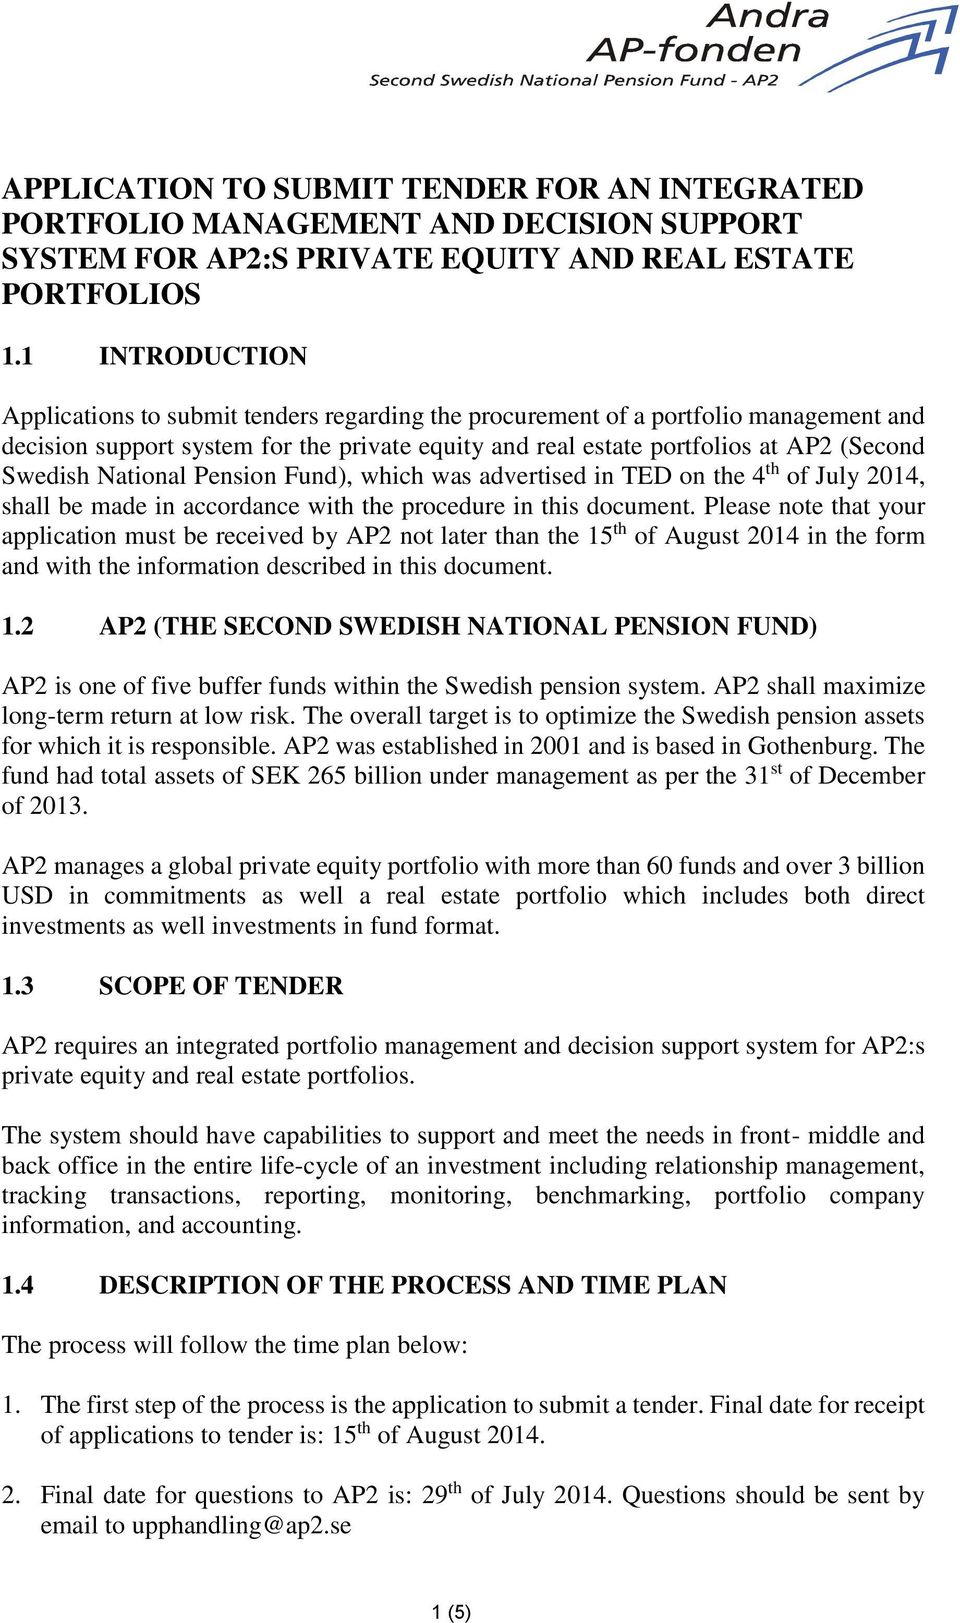 National Pension Fund), which was advertised in TED on the 4 th of July 2014, shall be made in accordance with the procedure in this document.